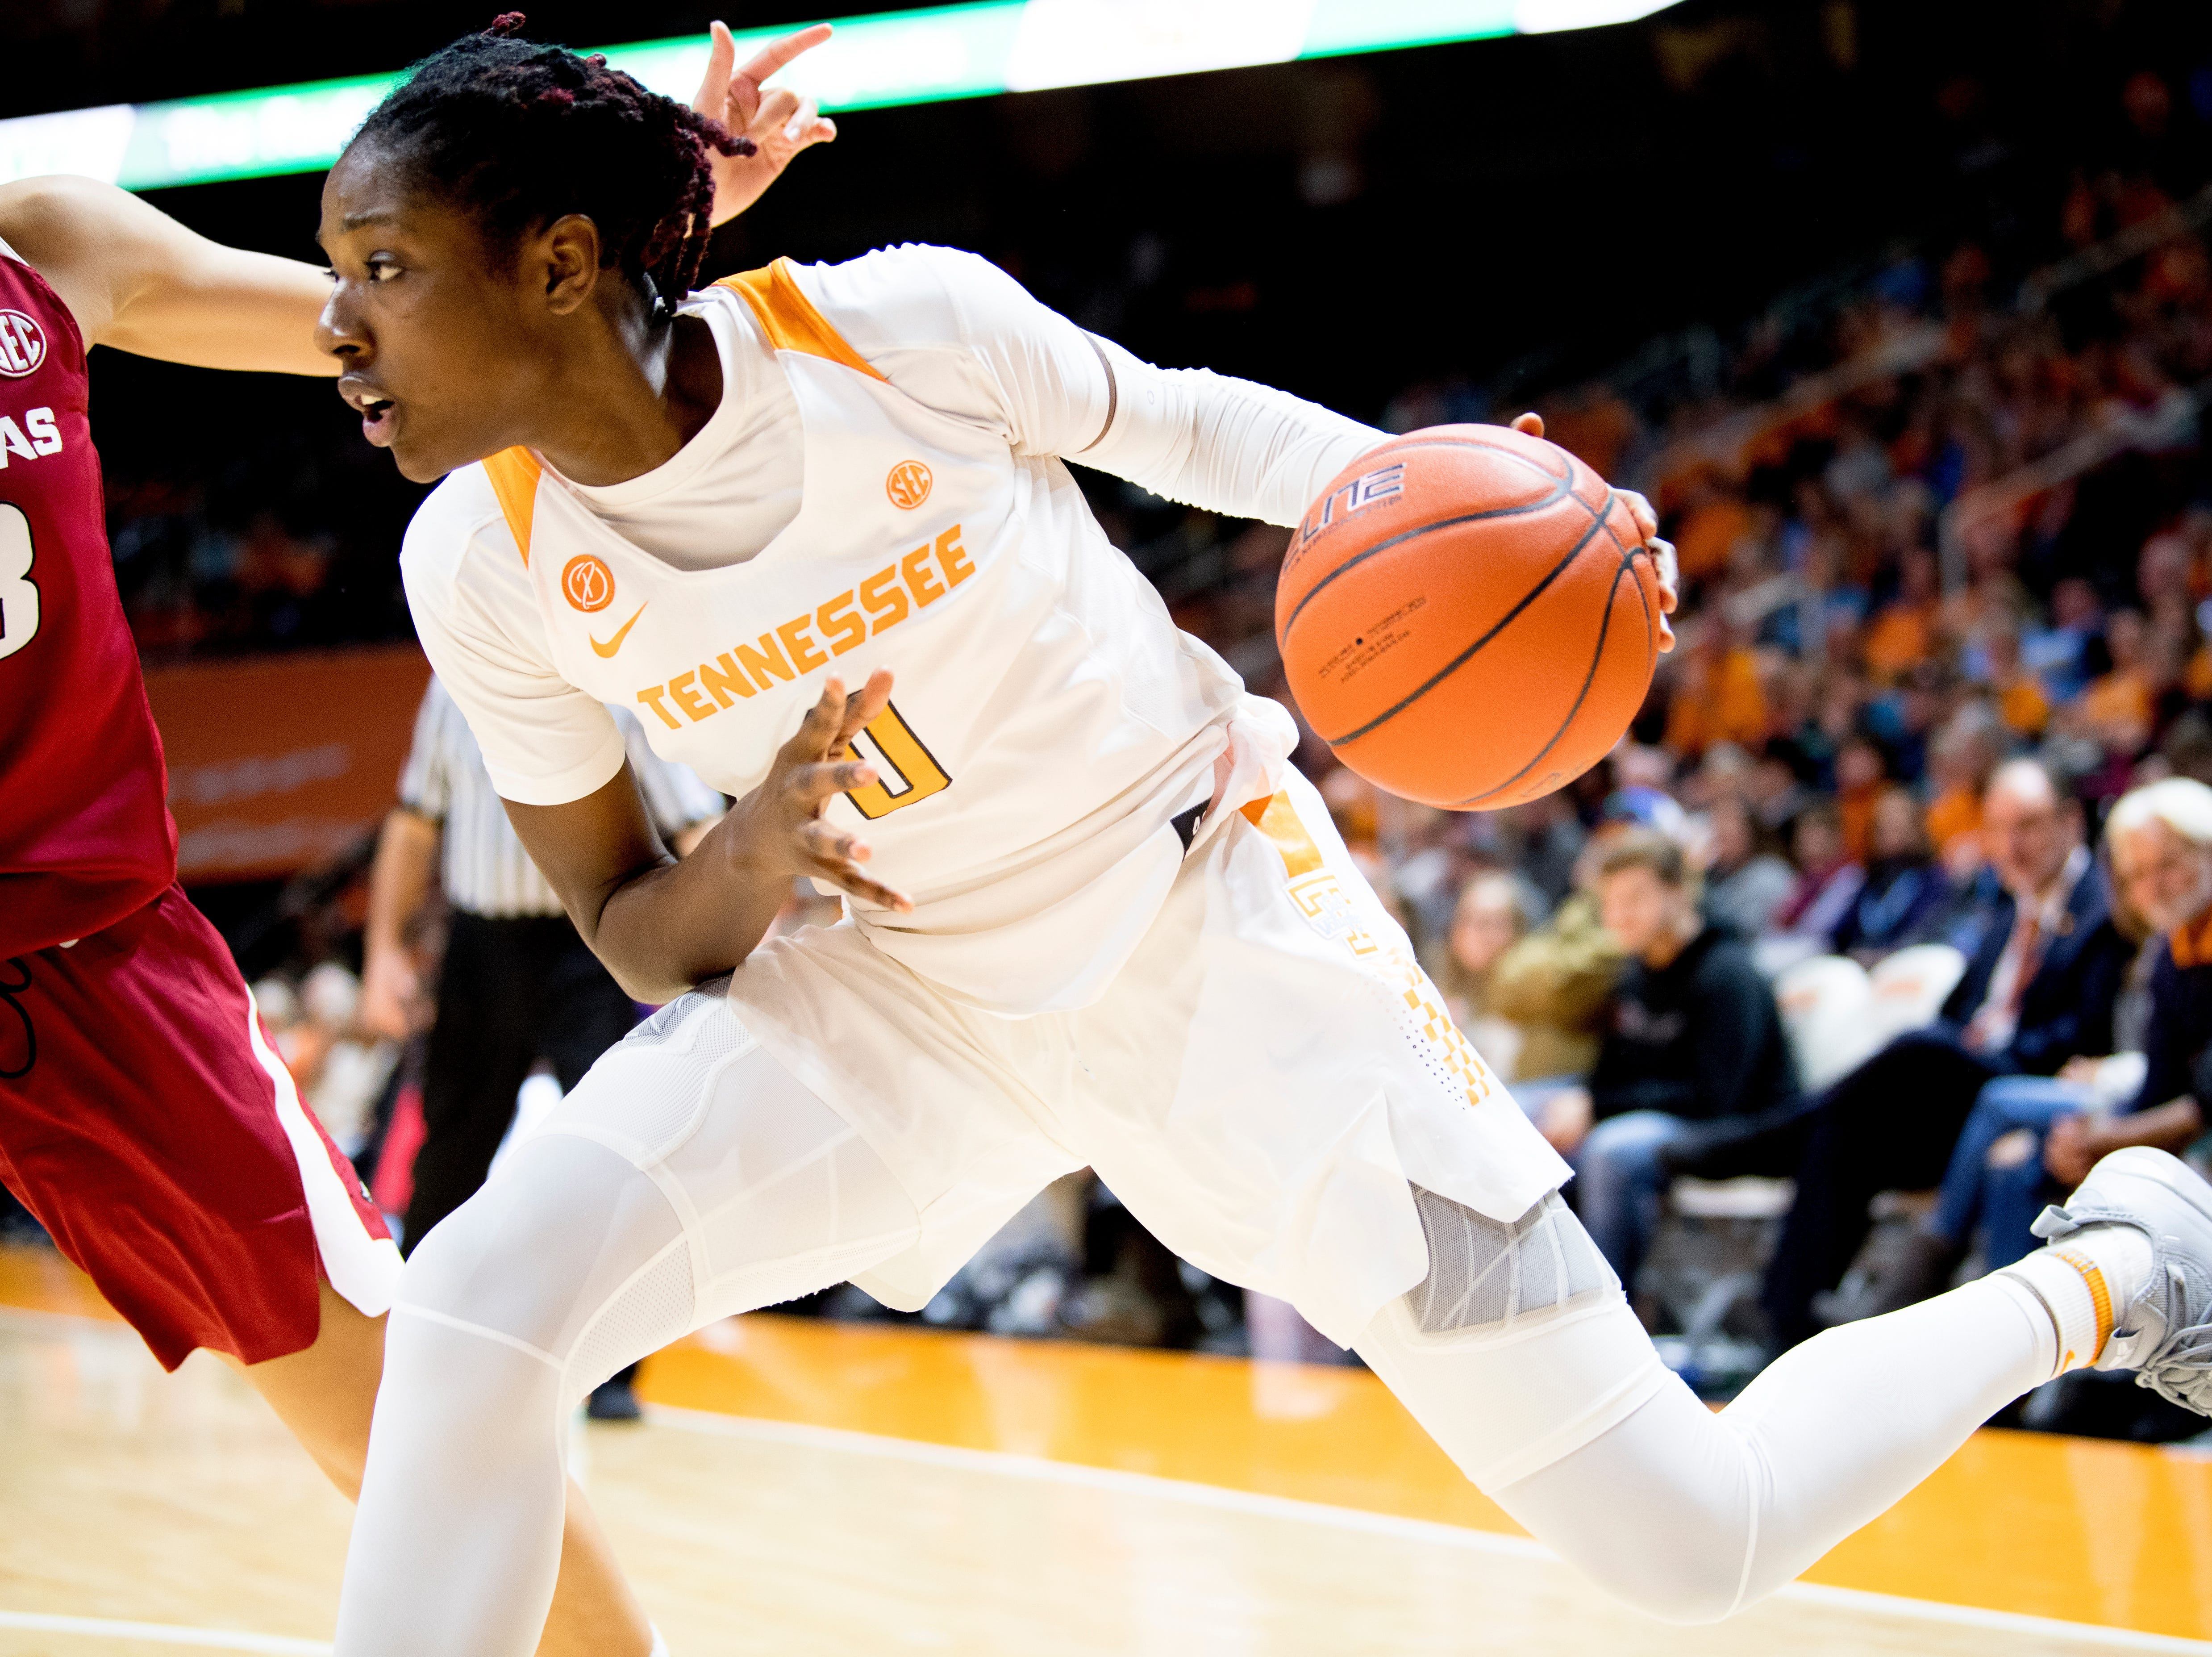 Tennessee guard/forward Rennia Davis (0) dribbles the ball during a game between Tennessee and Arkansas at Thompson-Boling Arena in Knoxville, Tennessee on Monday, January 21, 2019.